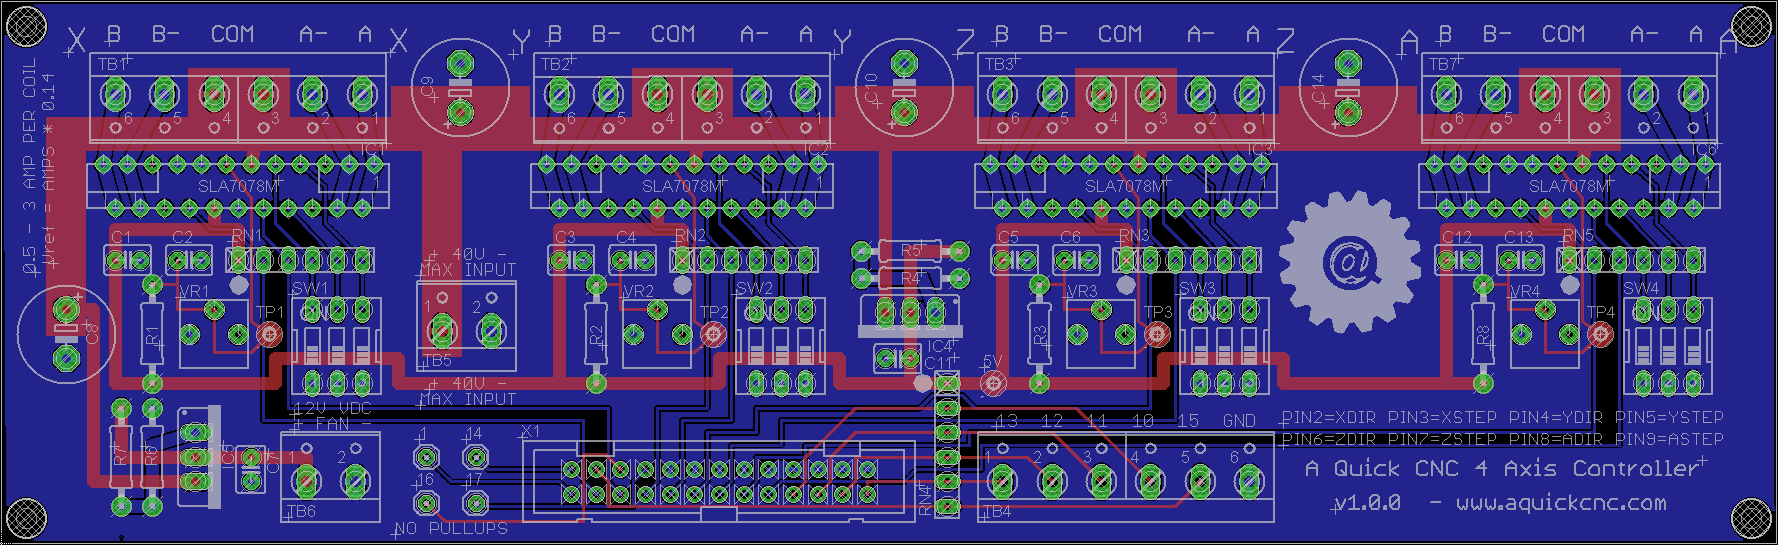 hight resolution of 4 axis diy cnc controller board png